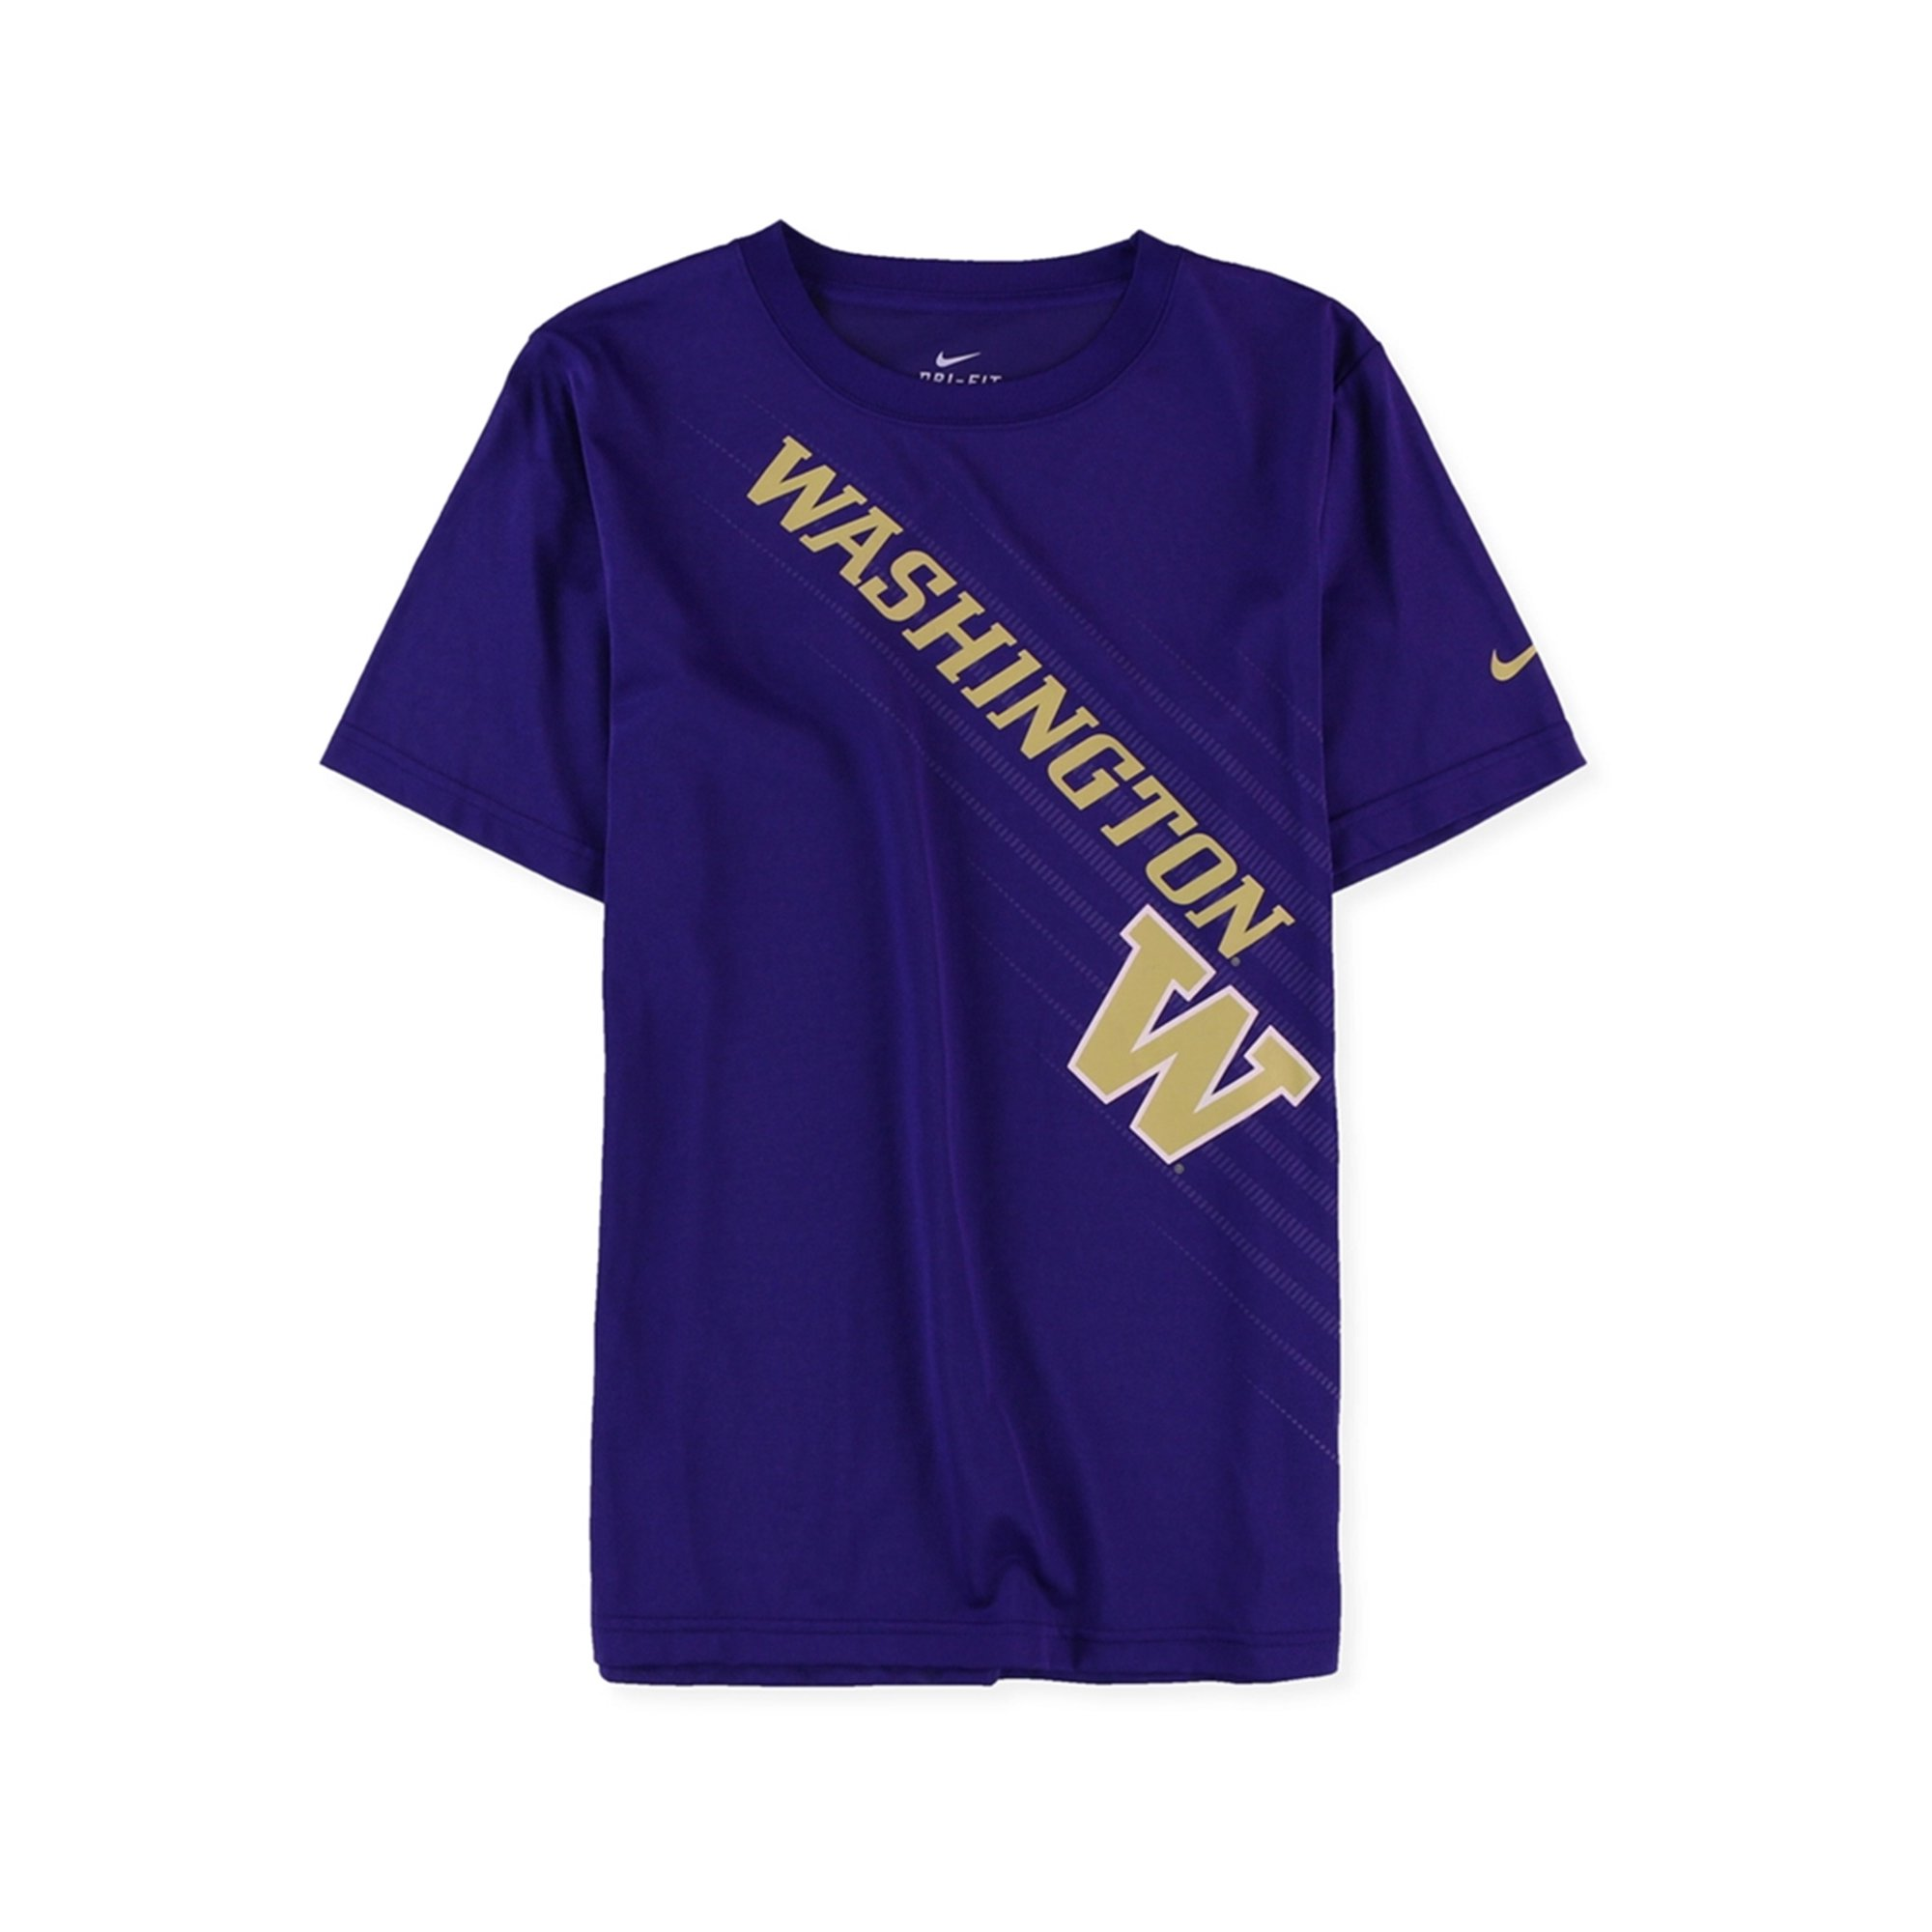 3f29ef37 Nike Boys Washington Graphic T-Shirt purple XL - Big Kids (8-20) | Walmart  Canada